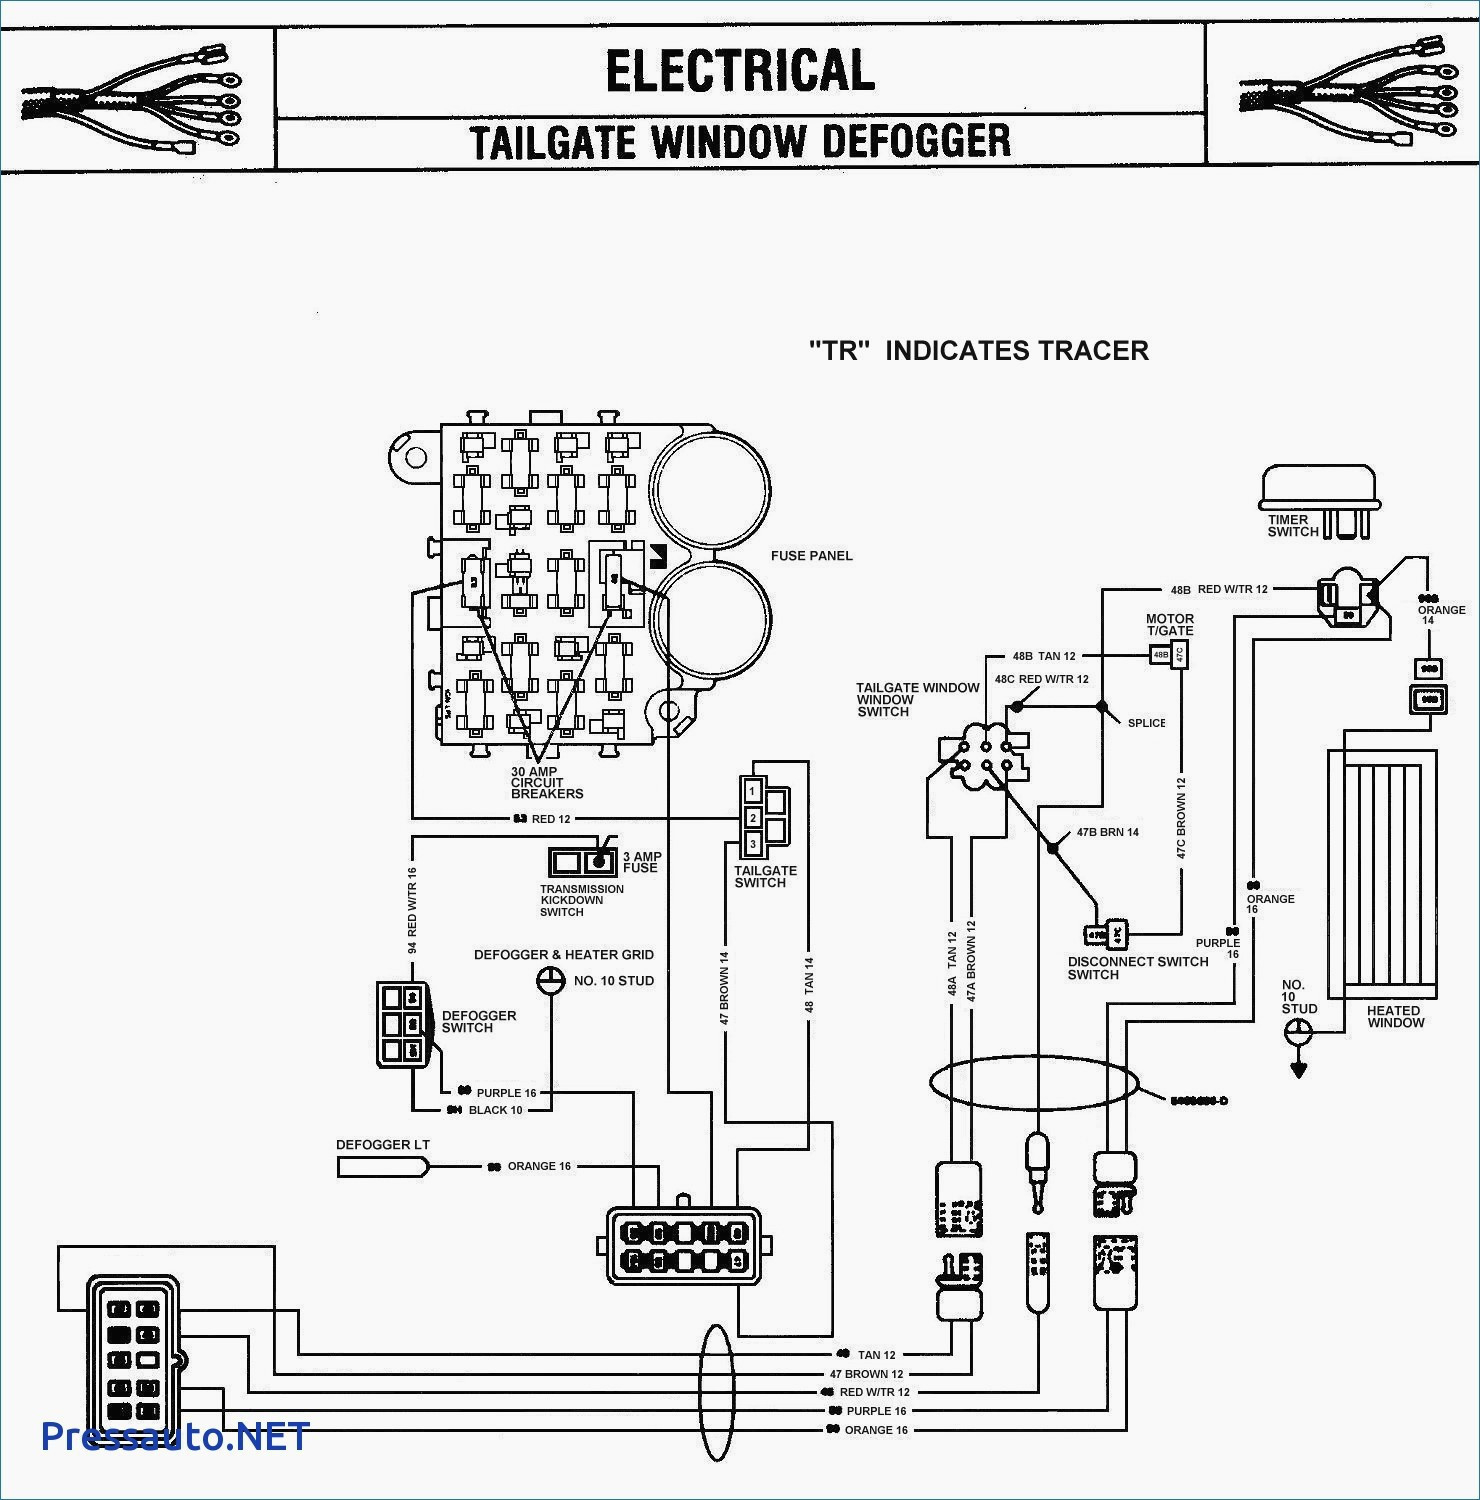 Carrier Ac Unit Wiring Diagram Gallery | Wiring Diagram Sample